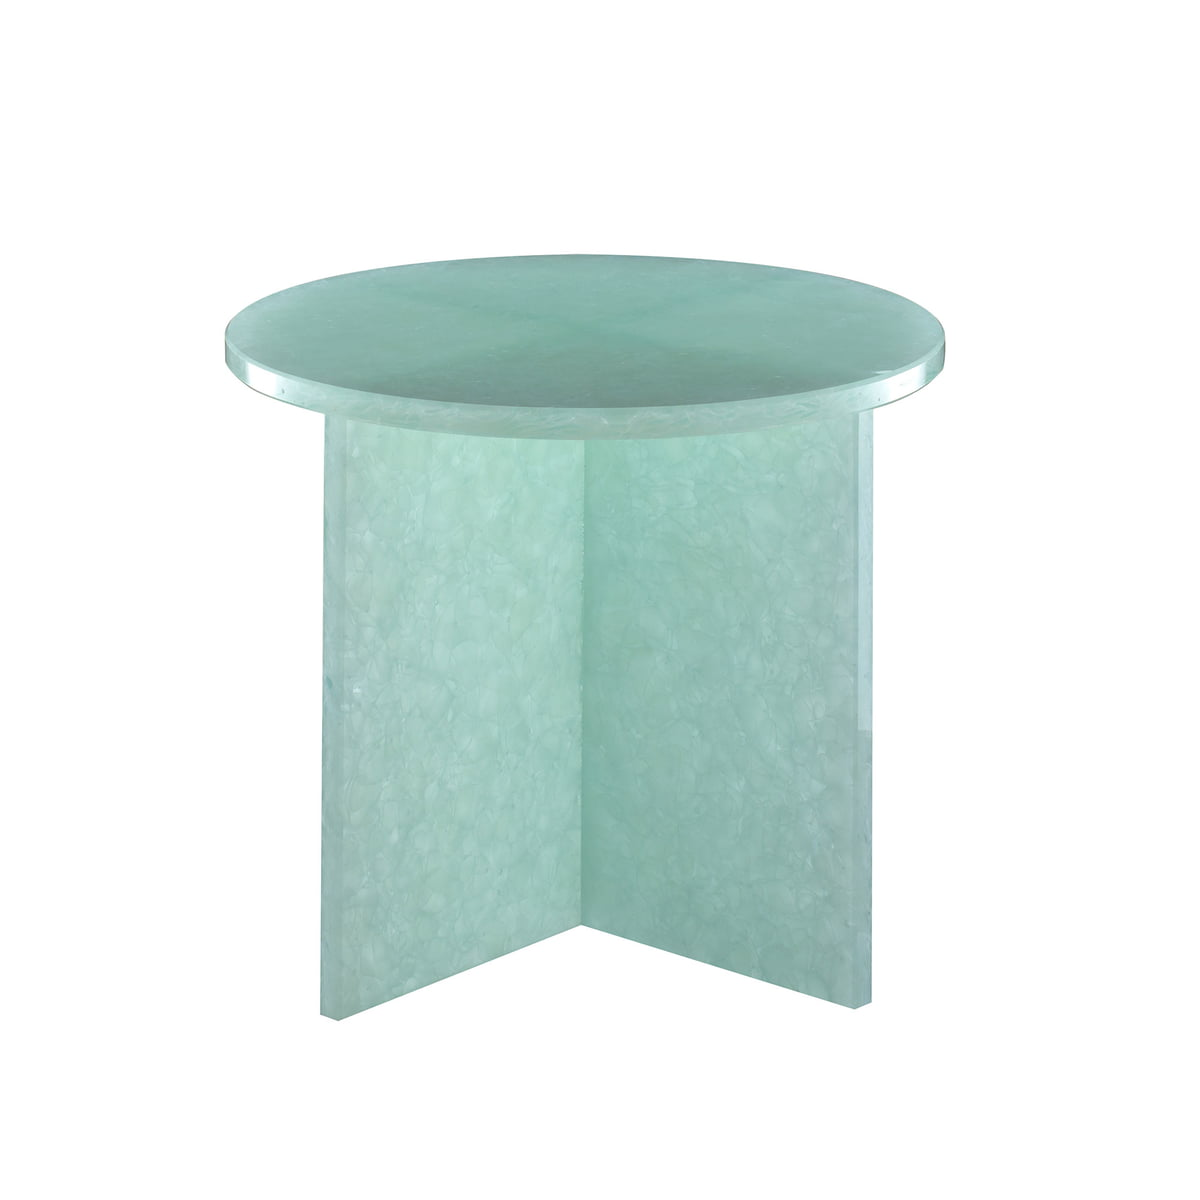 high top kitchen table the outrageous beautiful teal round end font pulpo connox tisch small jade frei threshold mirrored accent broyhill charging cat litter house glass living